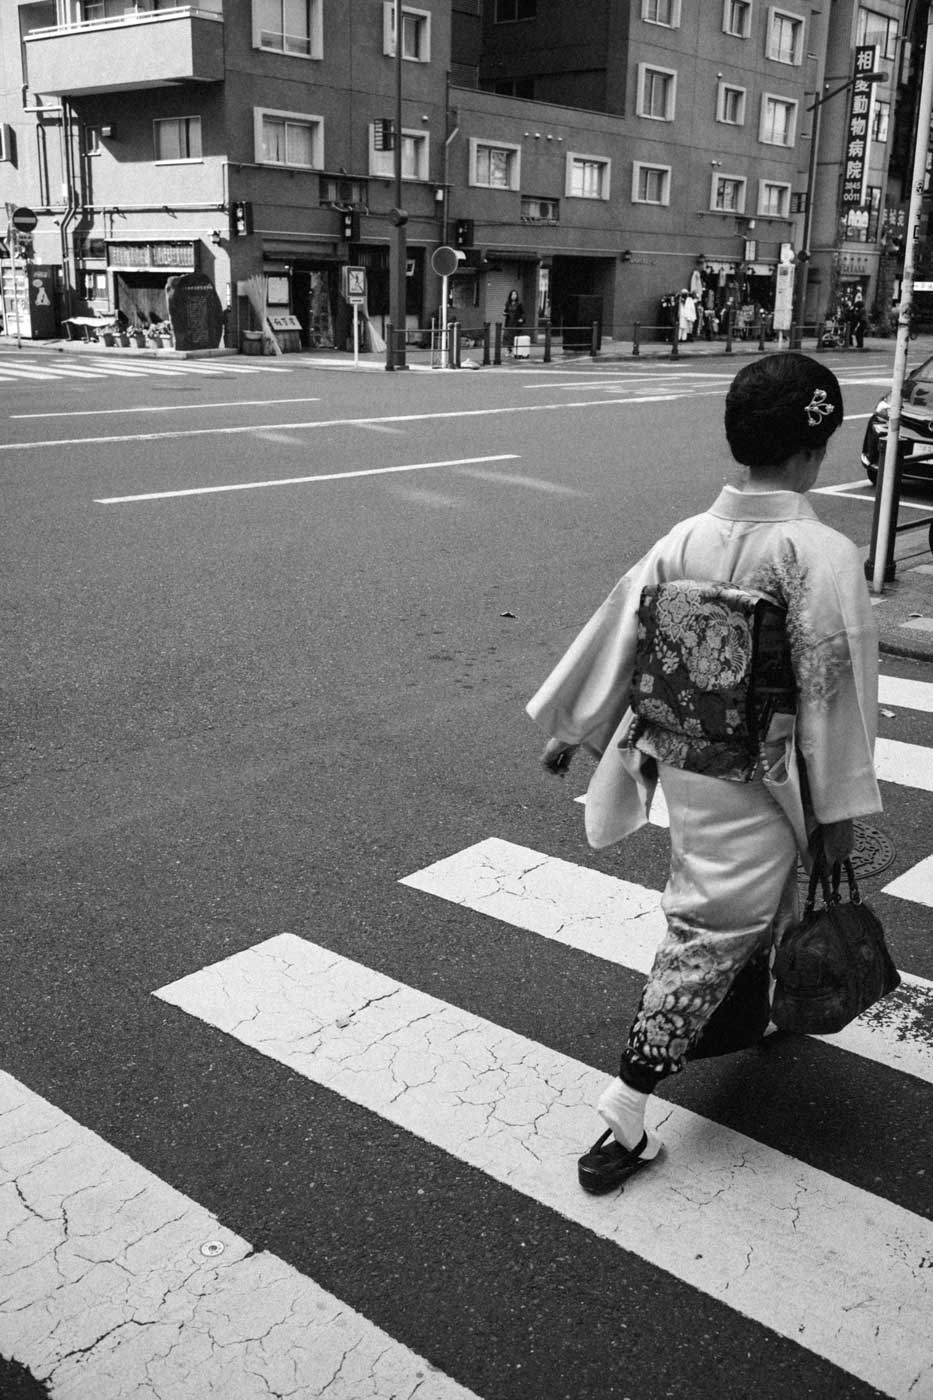 tokyo-2019-trip-japan-summilux-11663-FLE-35mm-f1.4-asph-leica-m10-digital-rangefinder-bw-mood-travel-blog-journal-asakusa-woman-in-yakata-crossing-street